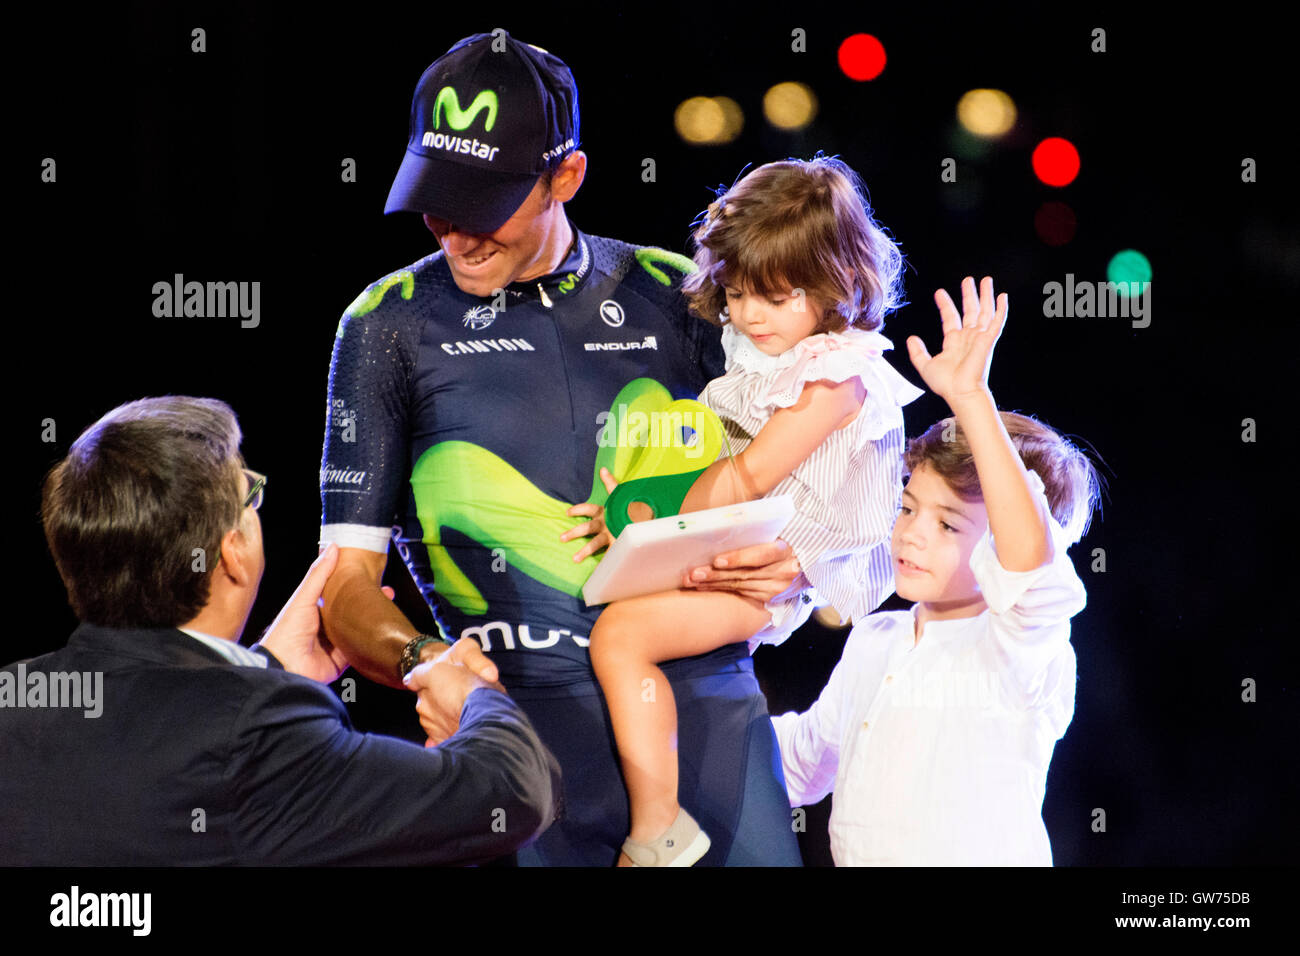 Madrid, Spain. 11th September, 2016. Alejandro Valverde (Movistar Team) like fair play winner at final podium of - Stock Image